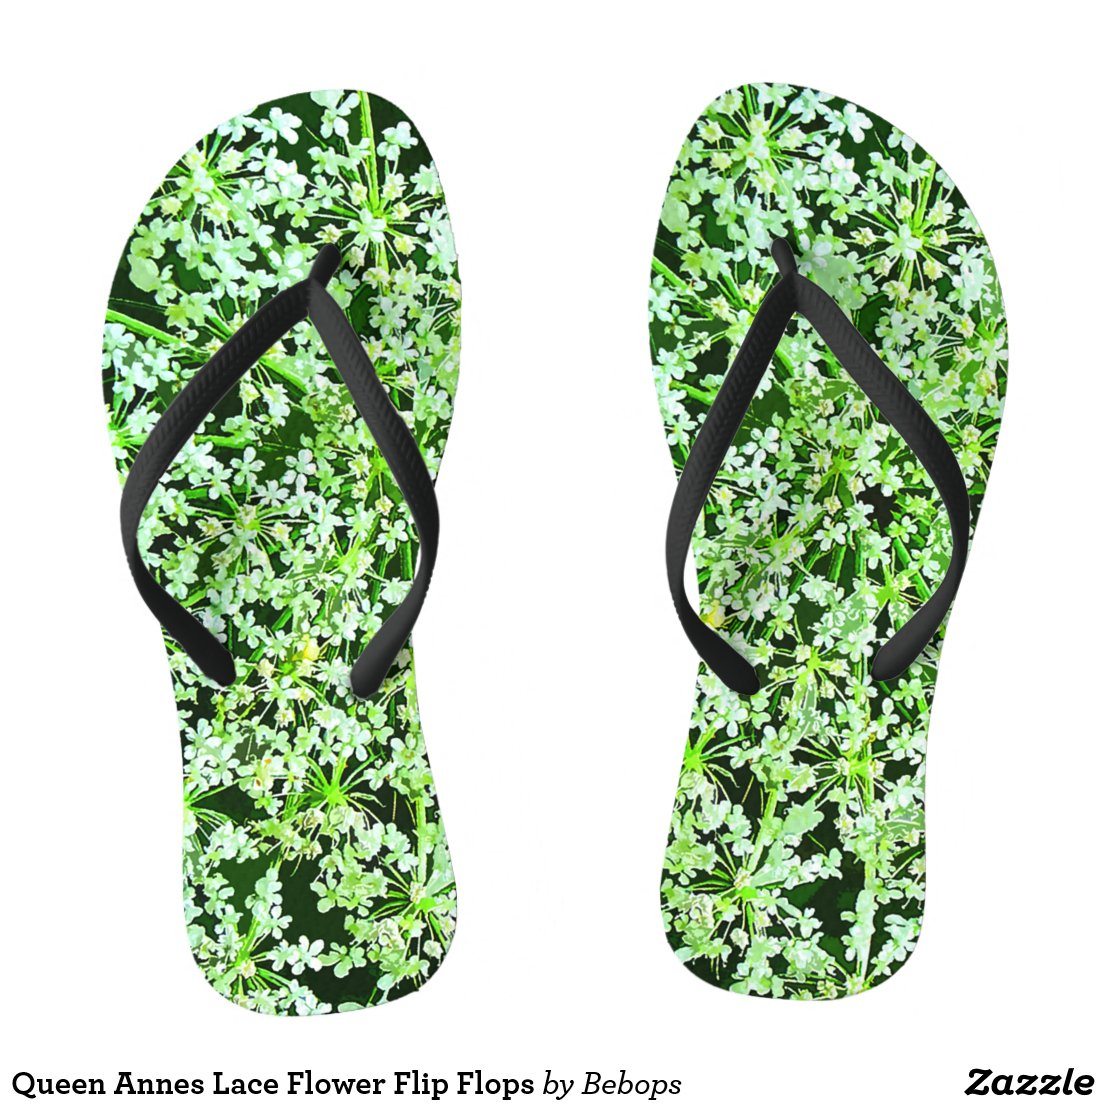 Queen Annes Lace Flower Flip Flops